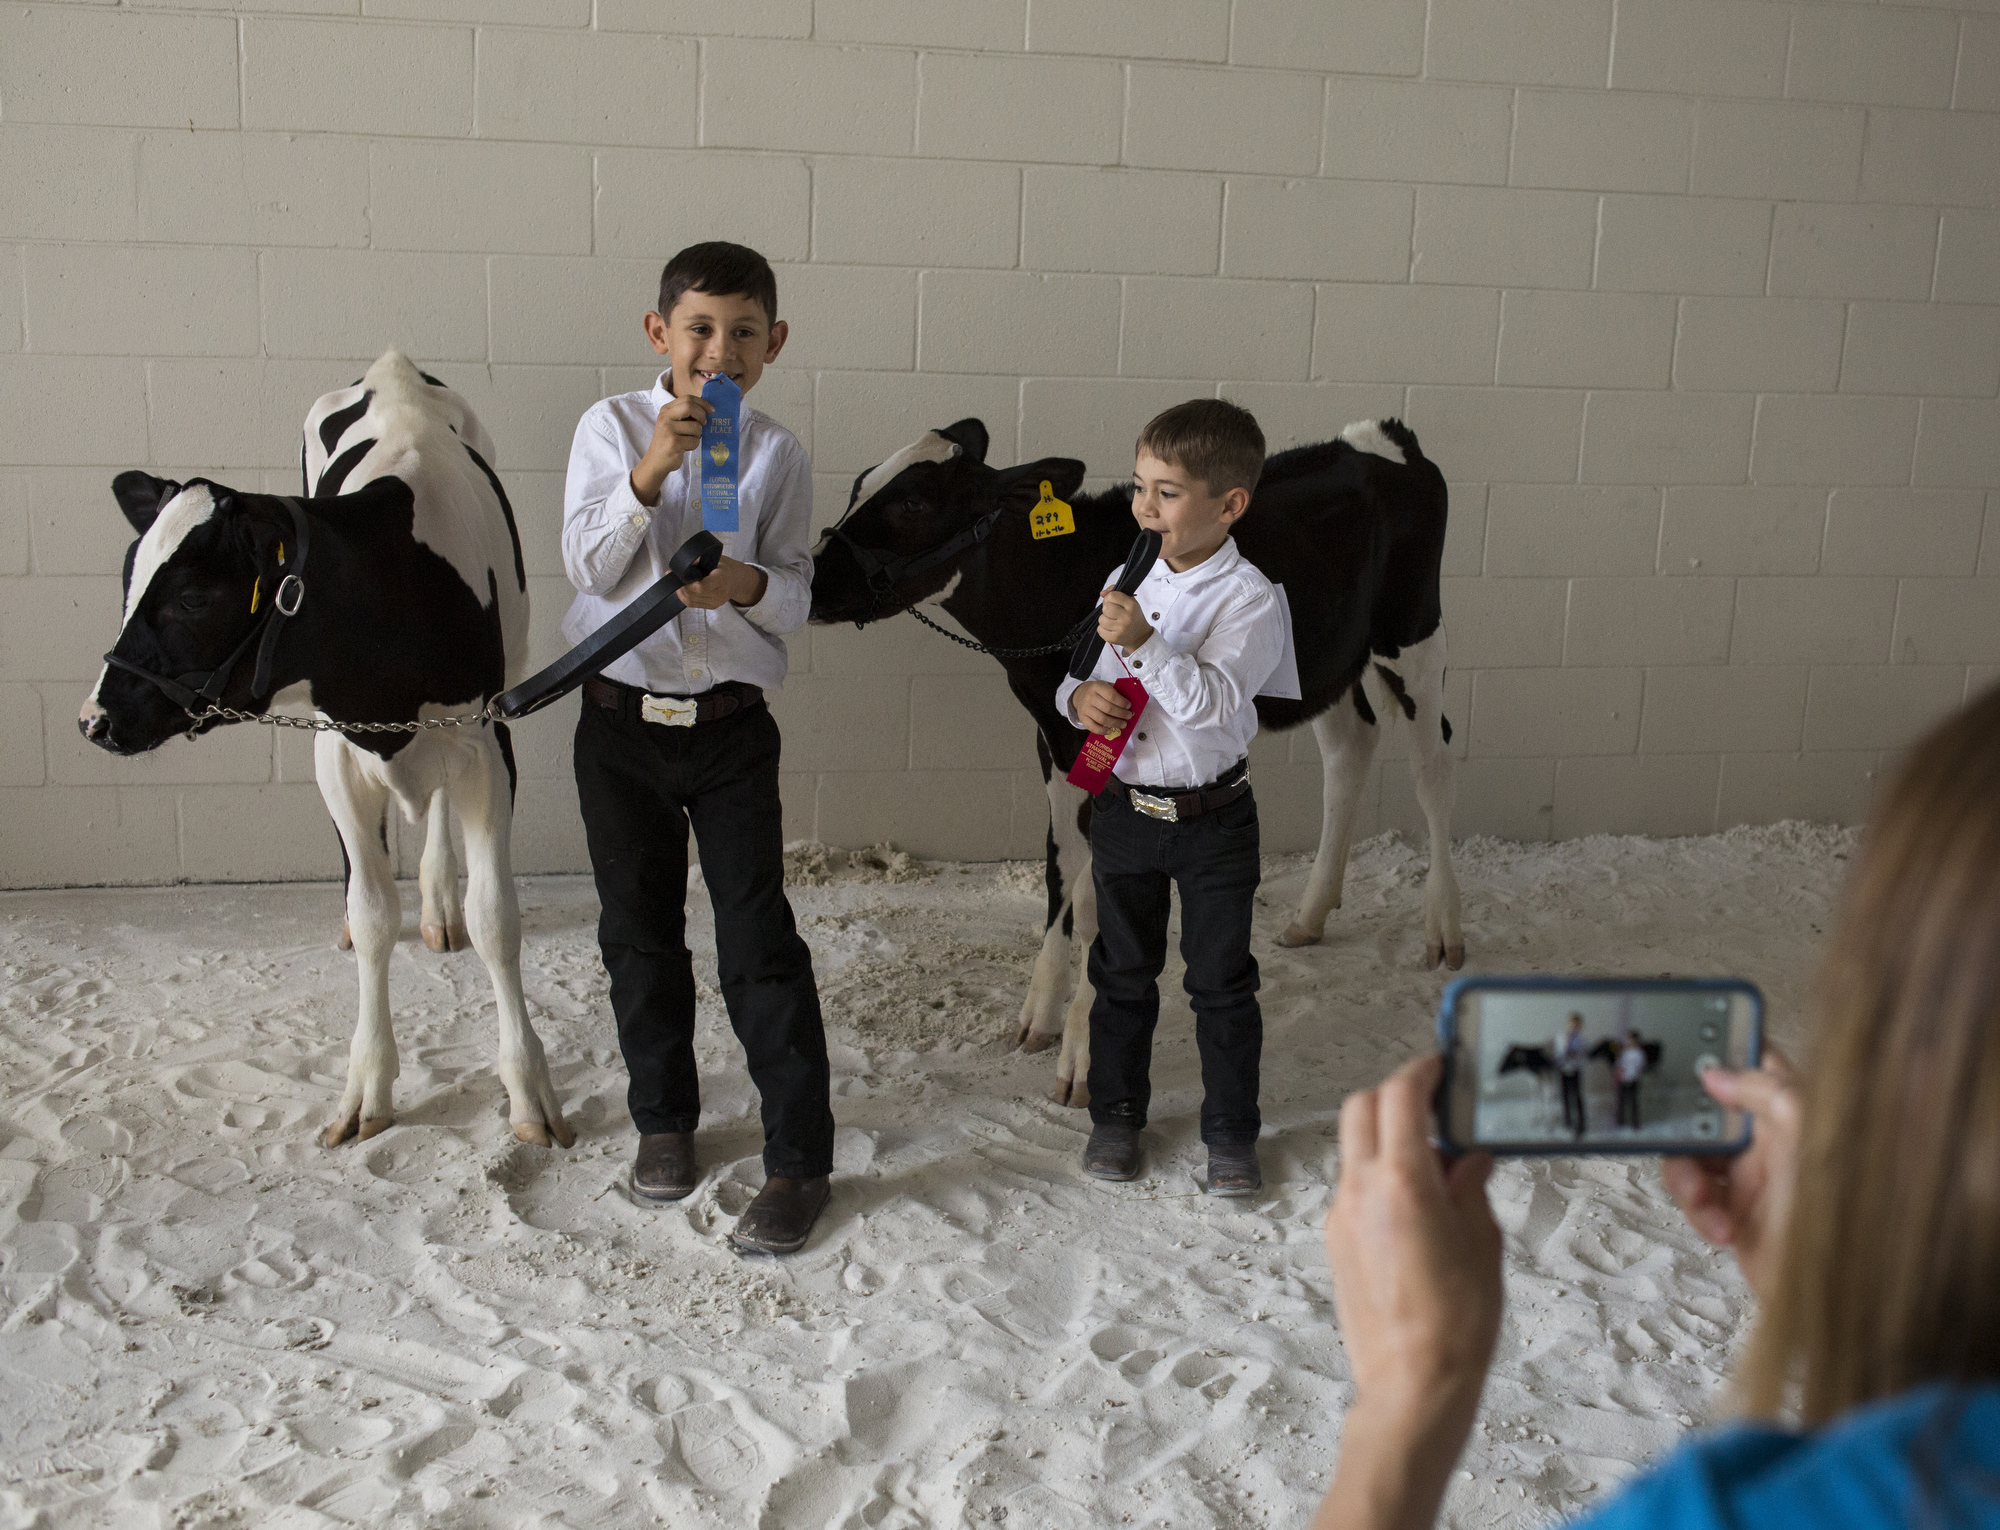 Alex Busciglio, 9, and Dominic Busciglio, 5, pose for a photo taken by their mom, Jana Busciglio, after showing Holstein calves at the Florida Strawberry Festival on March 4, 2017, in Plant City, Florida.